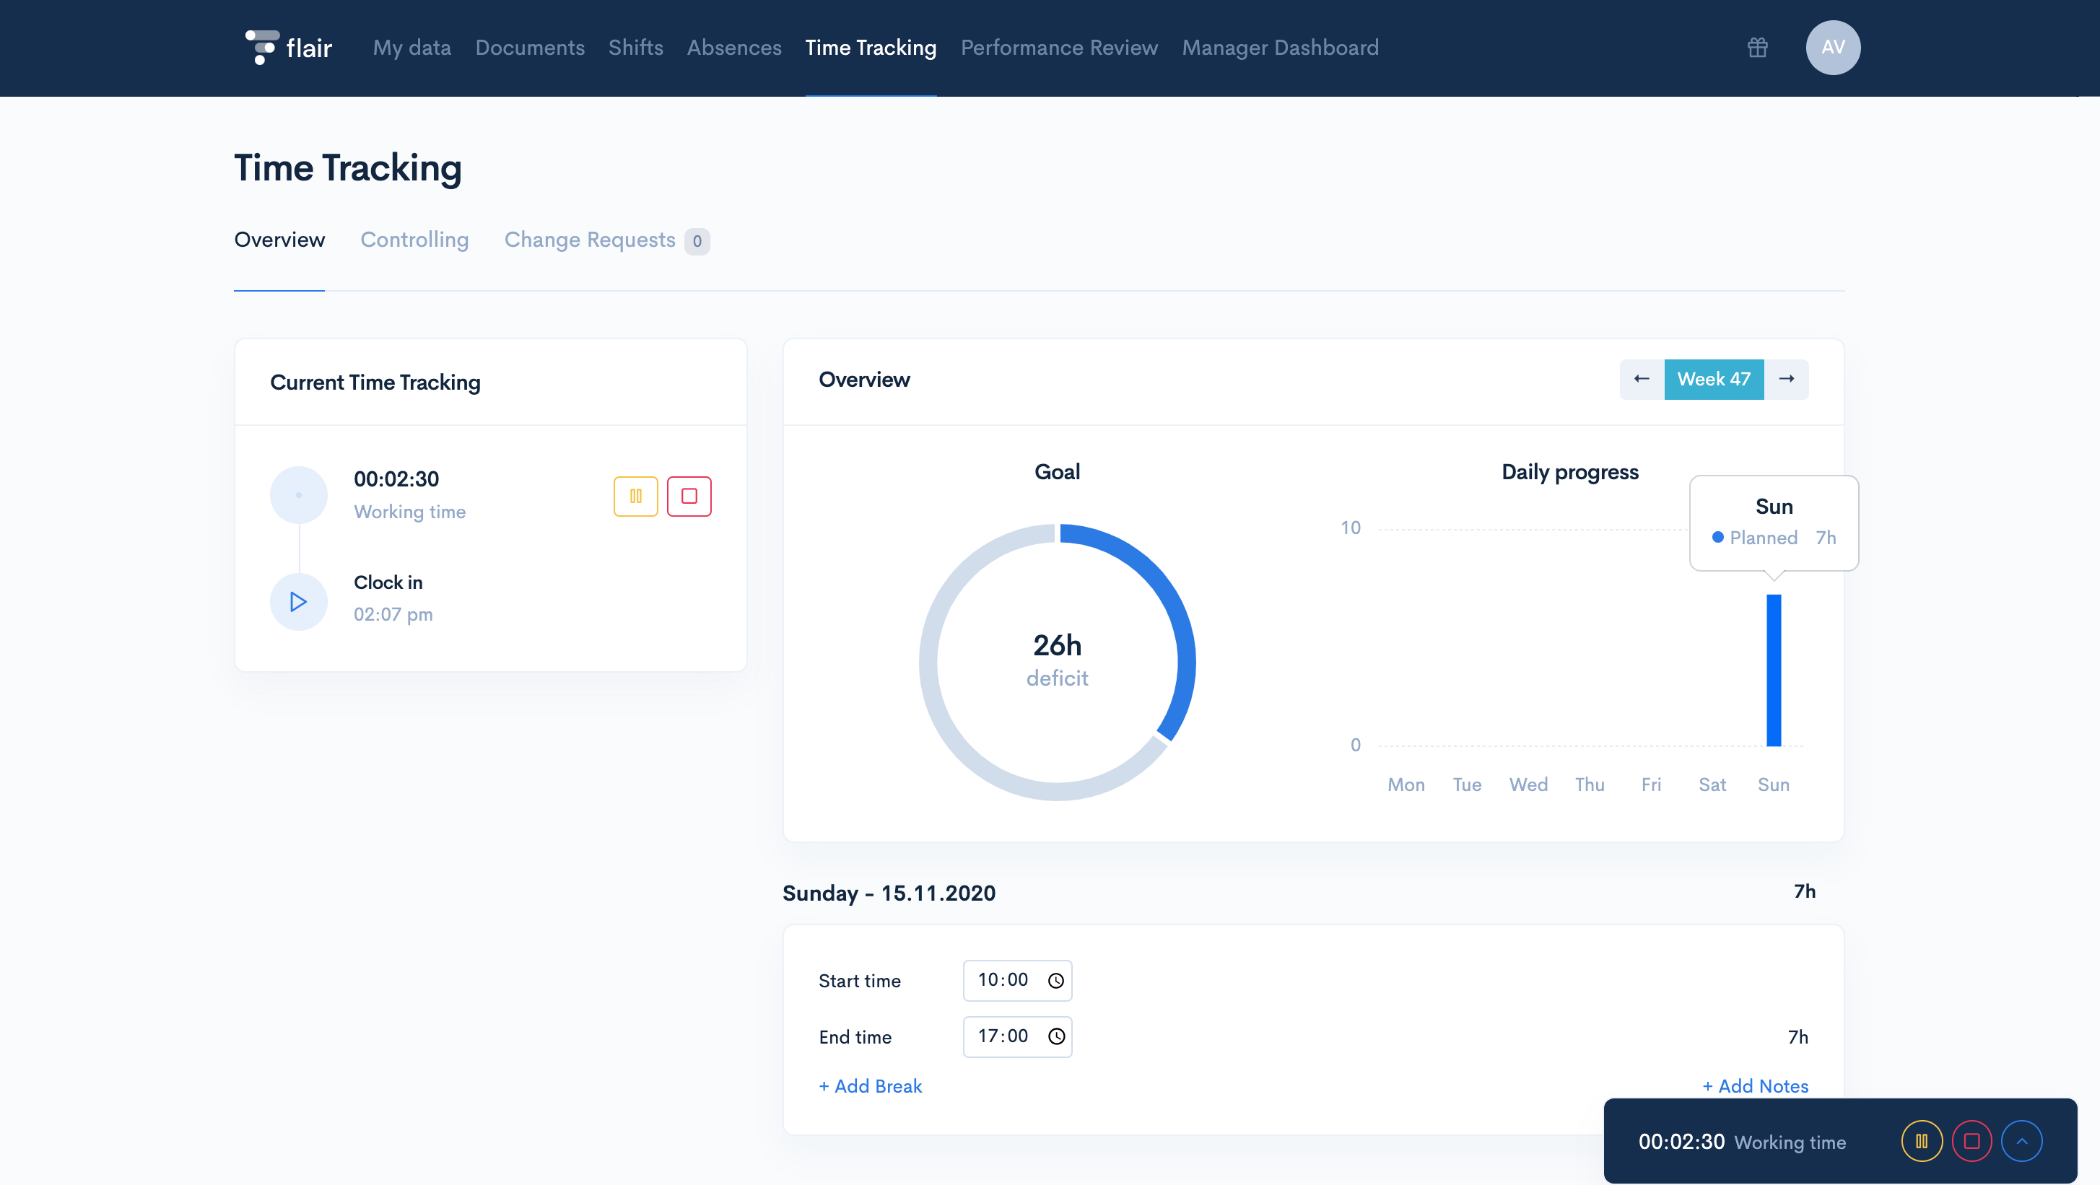 Enjoy a clear & elaborate time tracking interface with a daily and weekly overview of automated overtime compensation. Increase your company's success by tracking attendance, productivity, and efficiency with a simple time-tracker from flair!